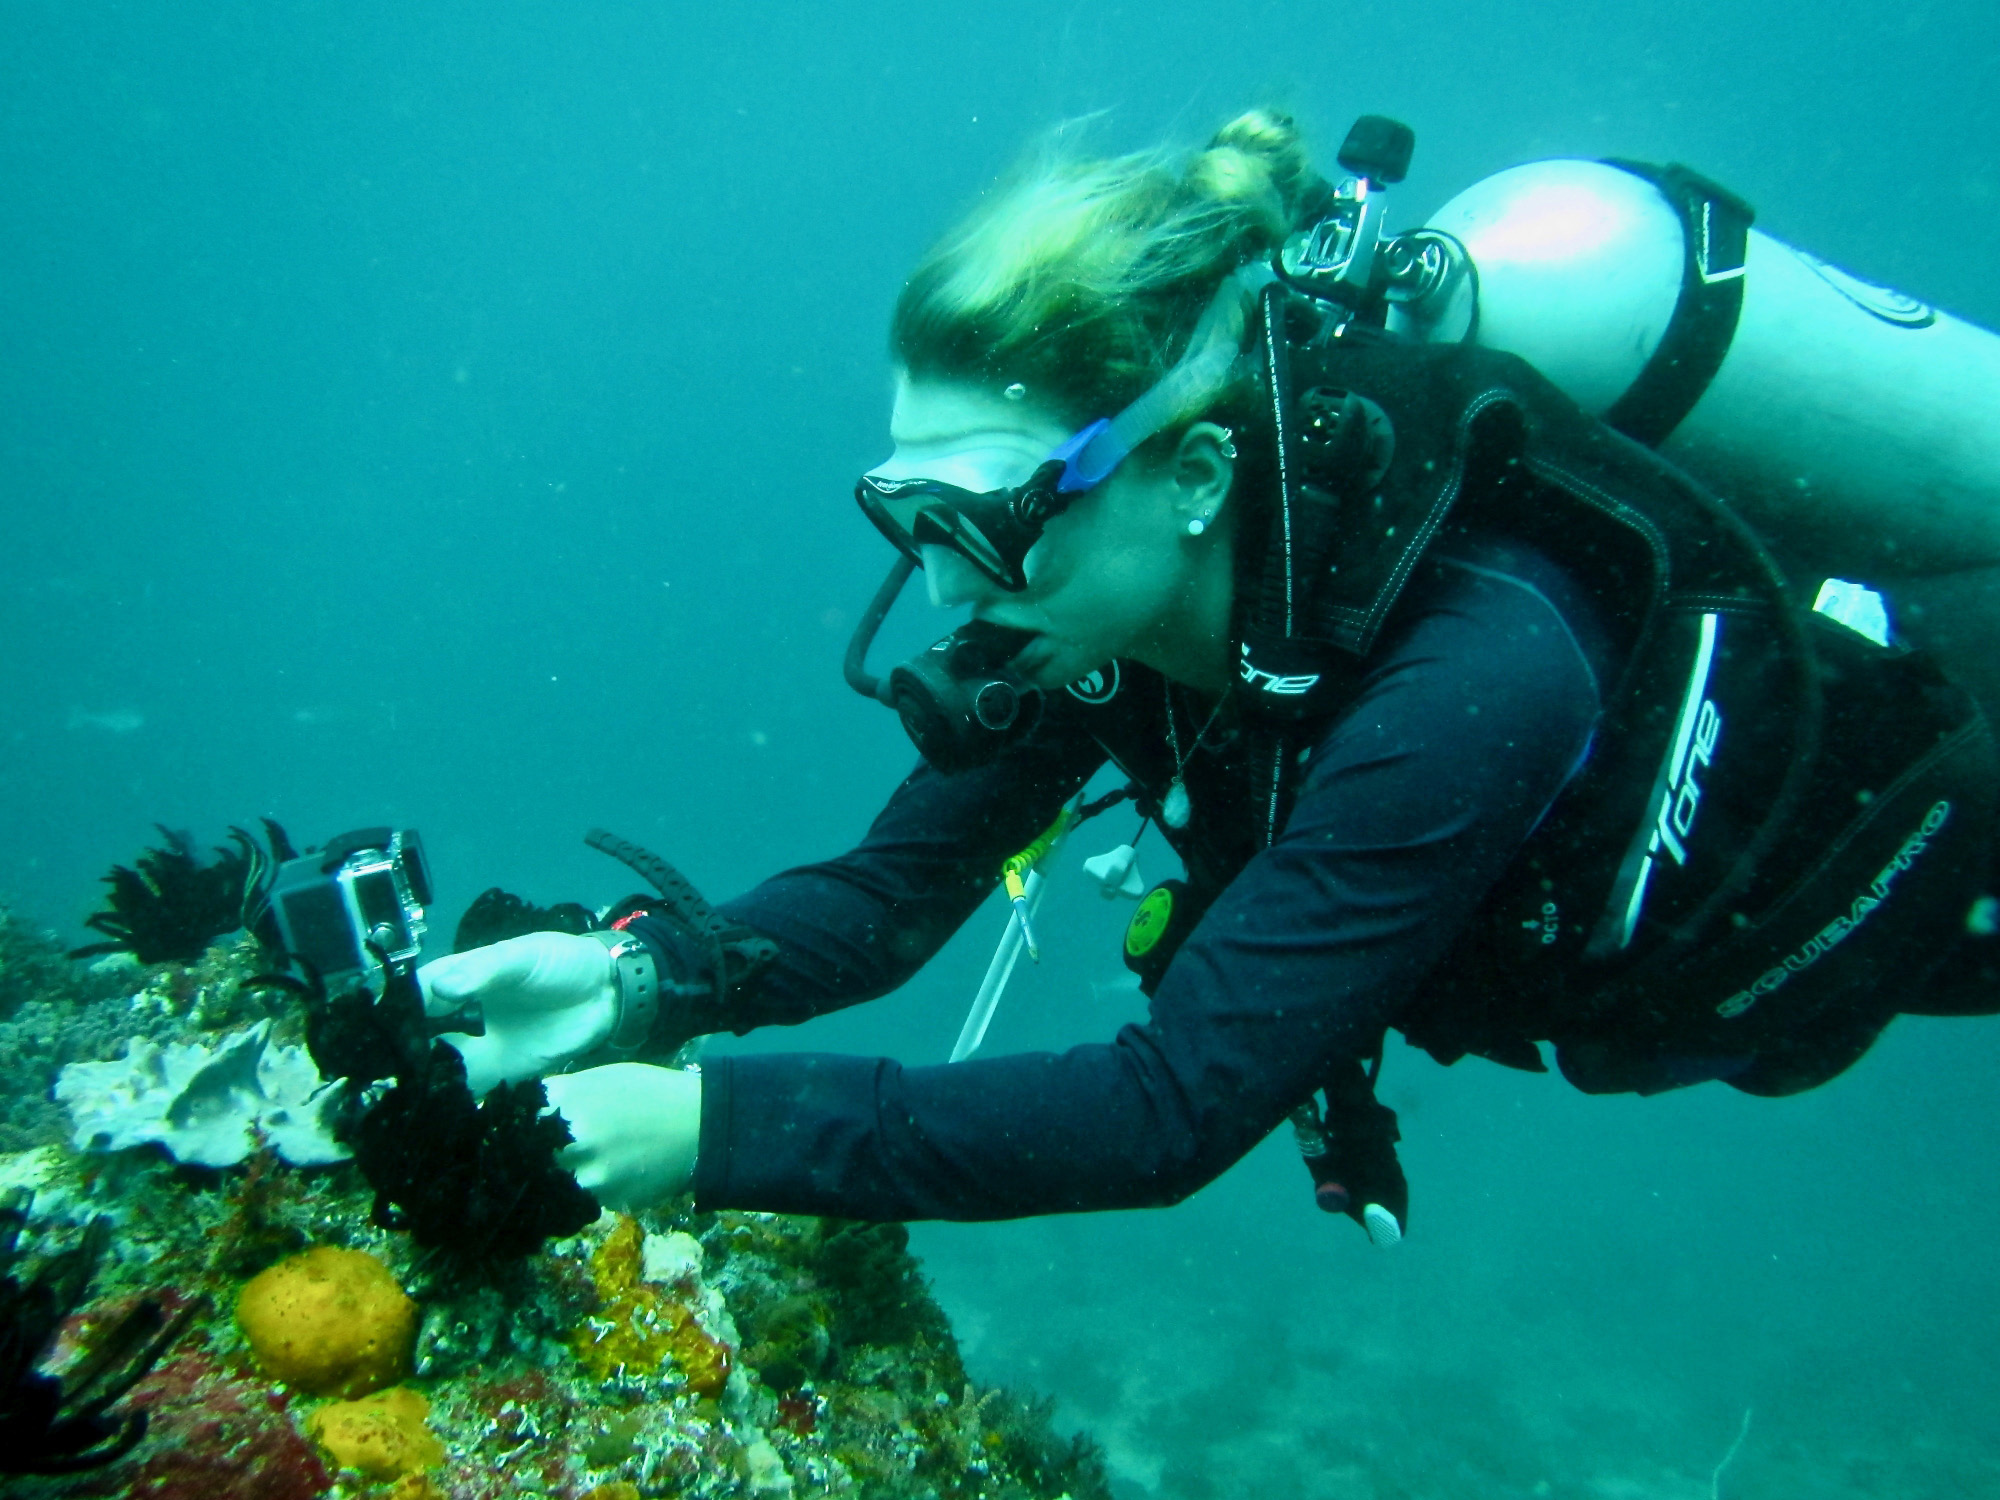 Student scuba diving in Indonesia